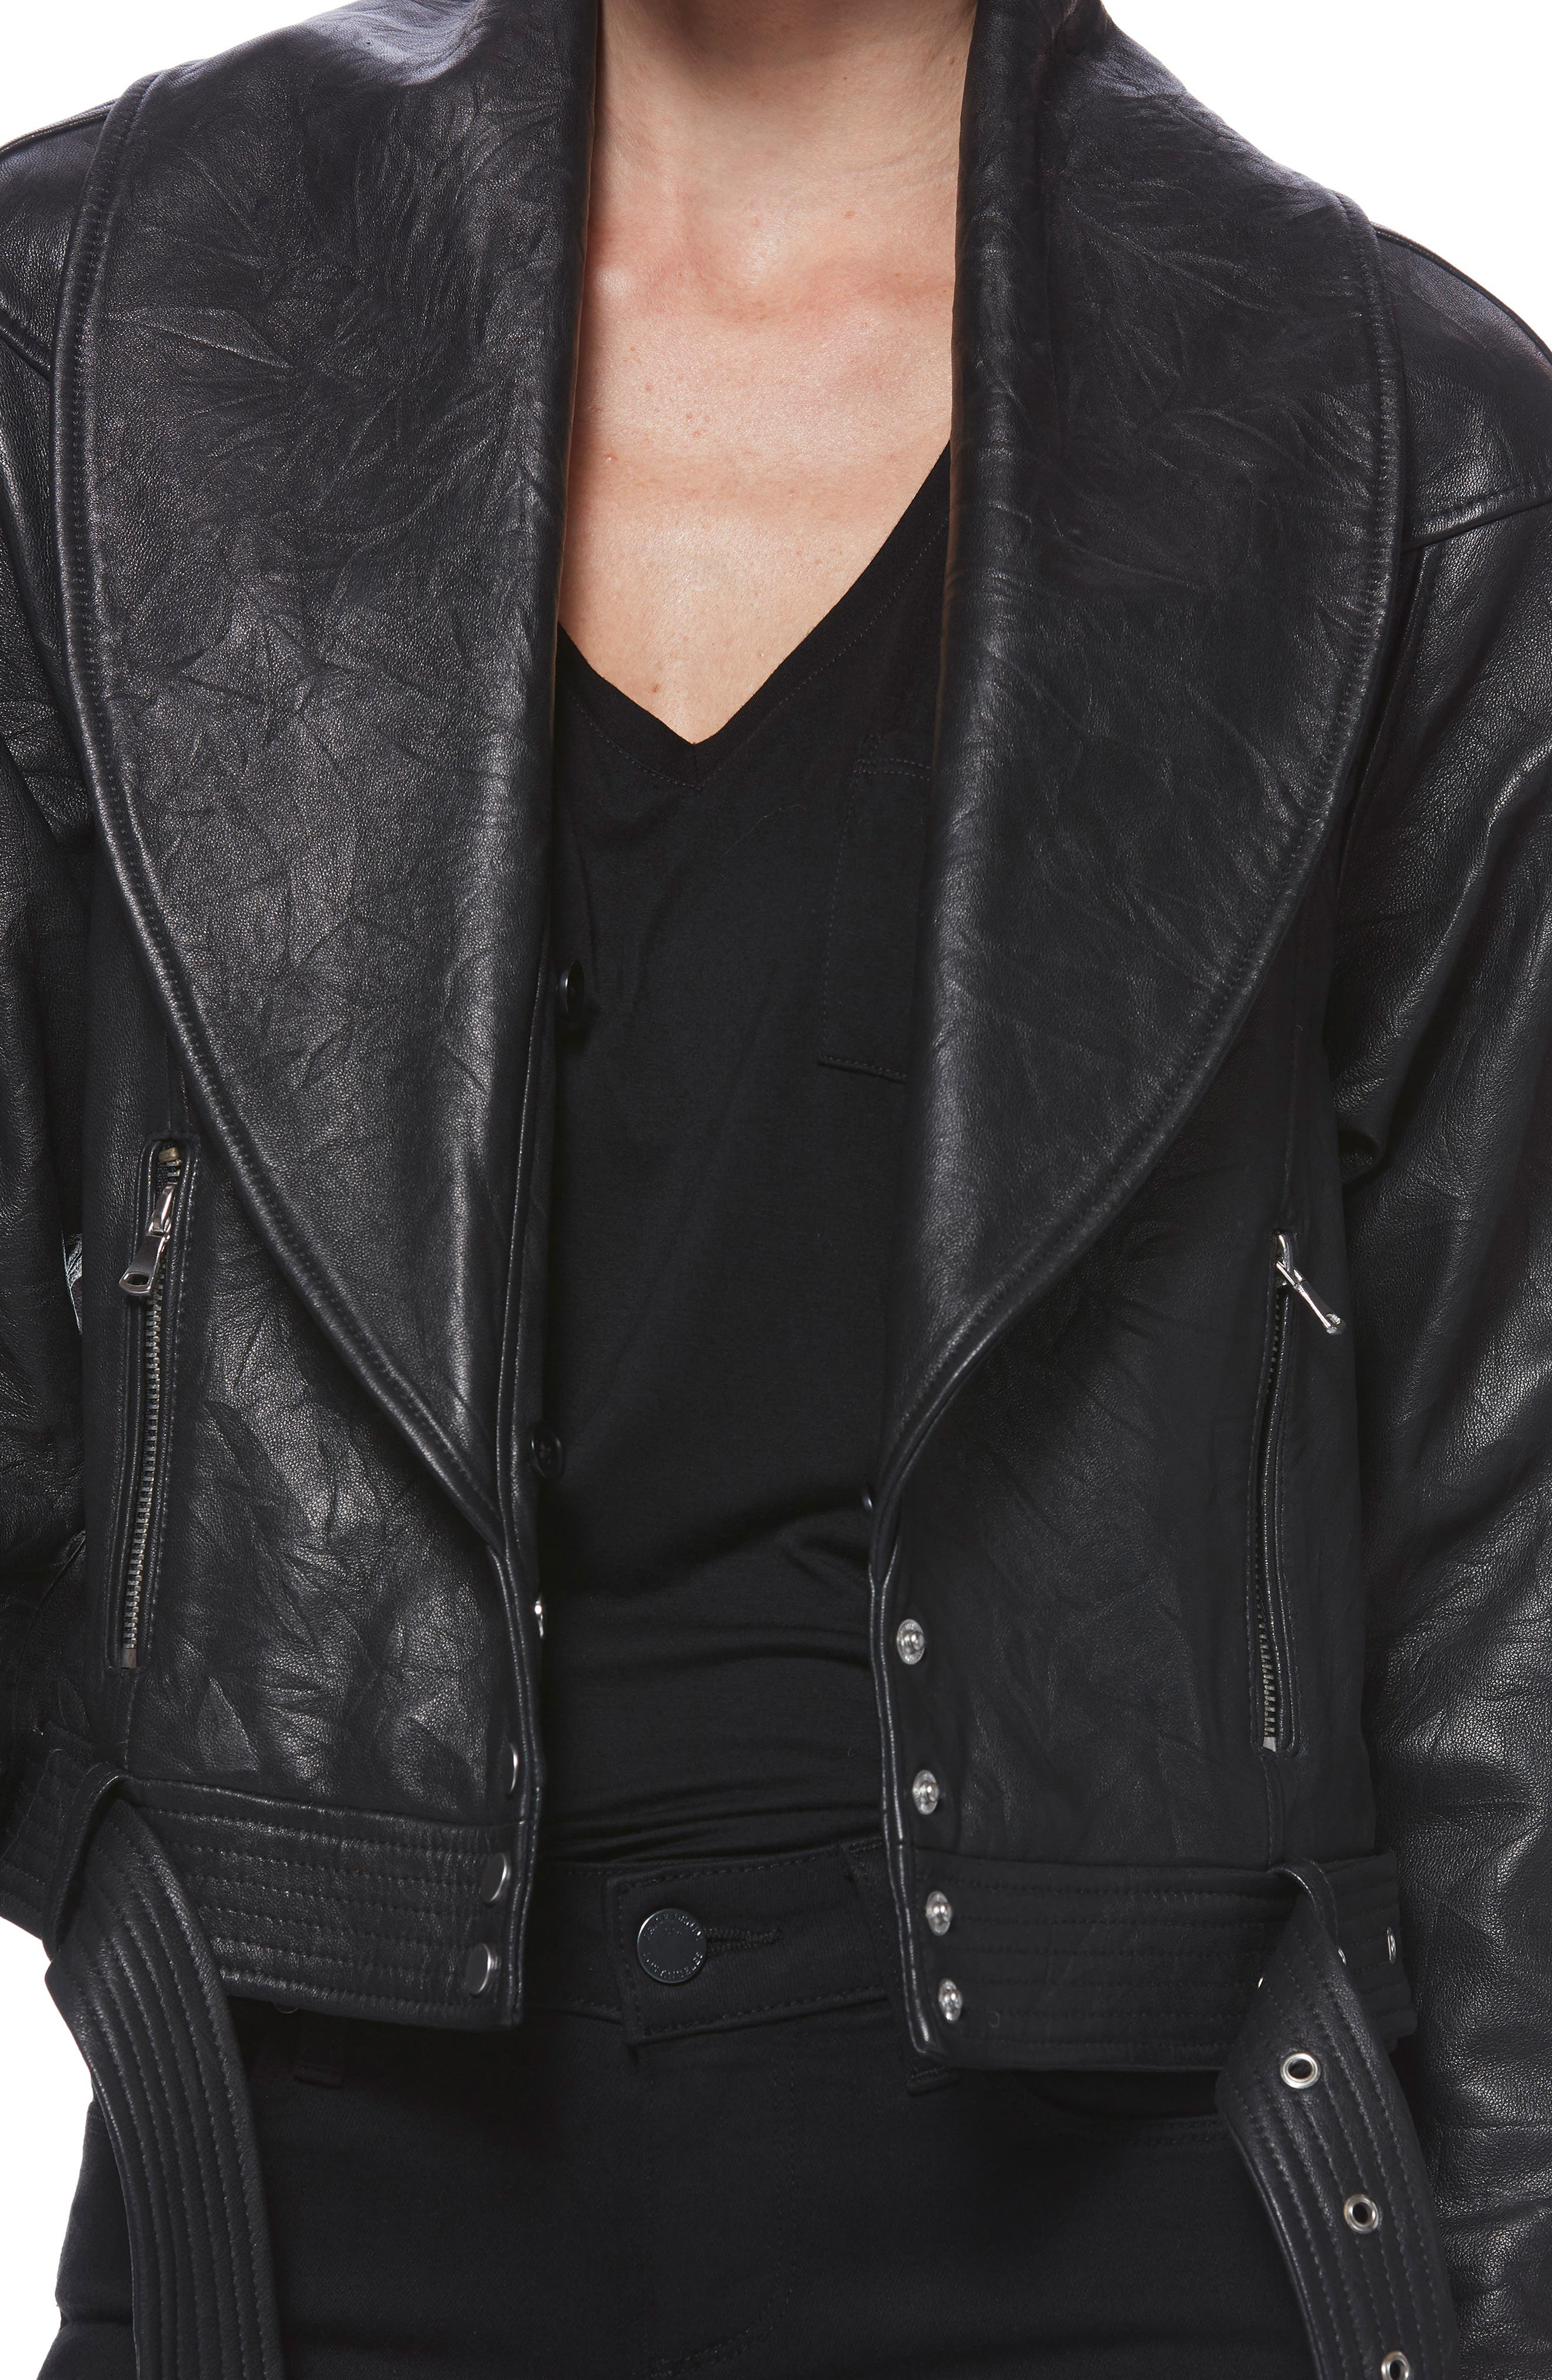 Rizza Lambskin Leather Moto Jacket with Removable Faux Fur Collar,                             Alternate thumbnail 9, color,                             BLACK